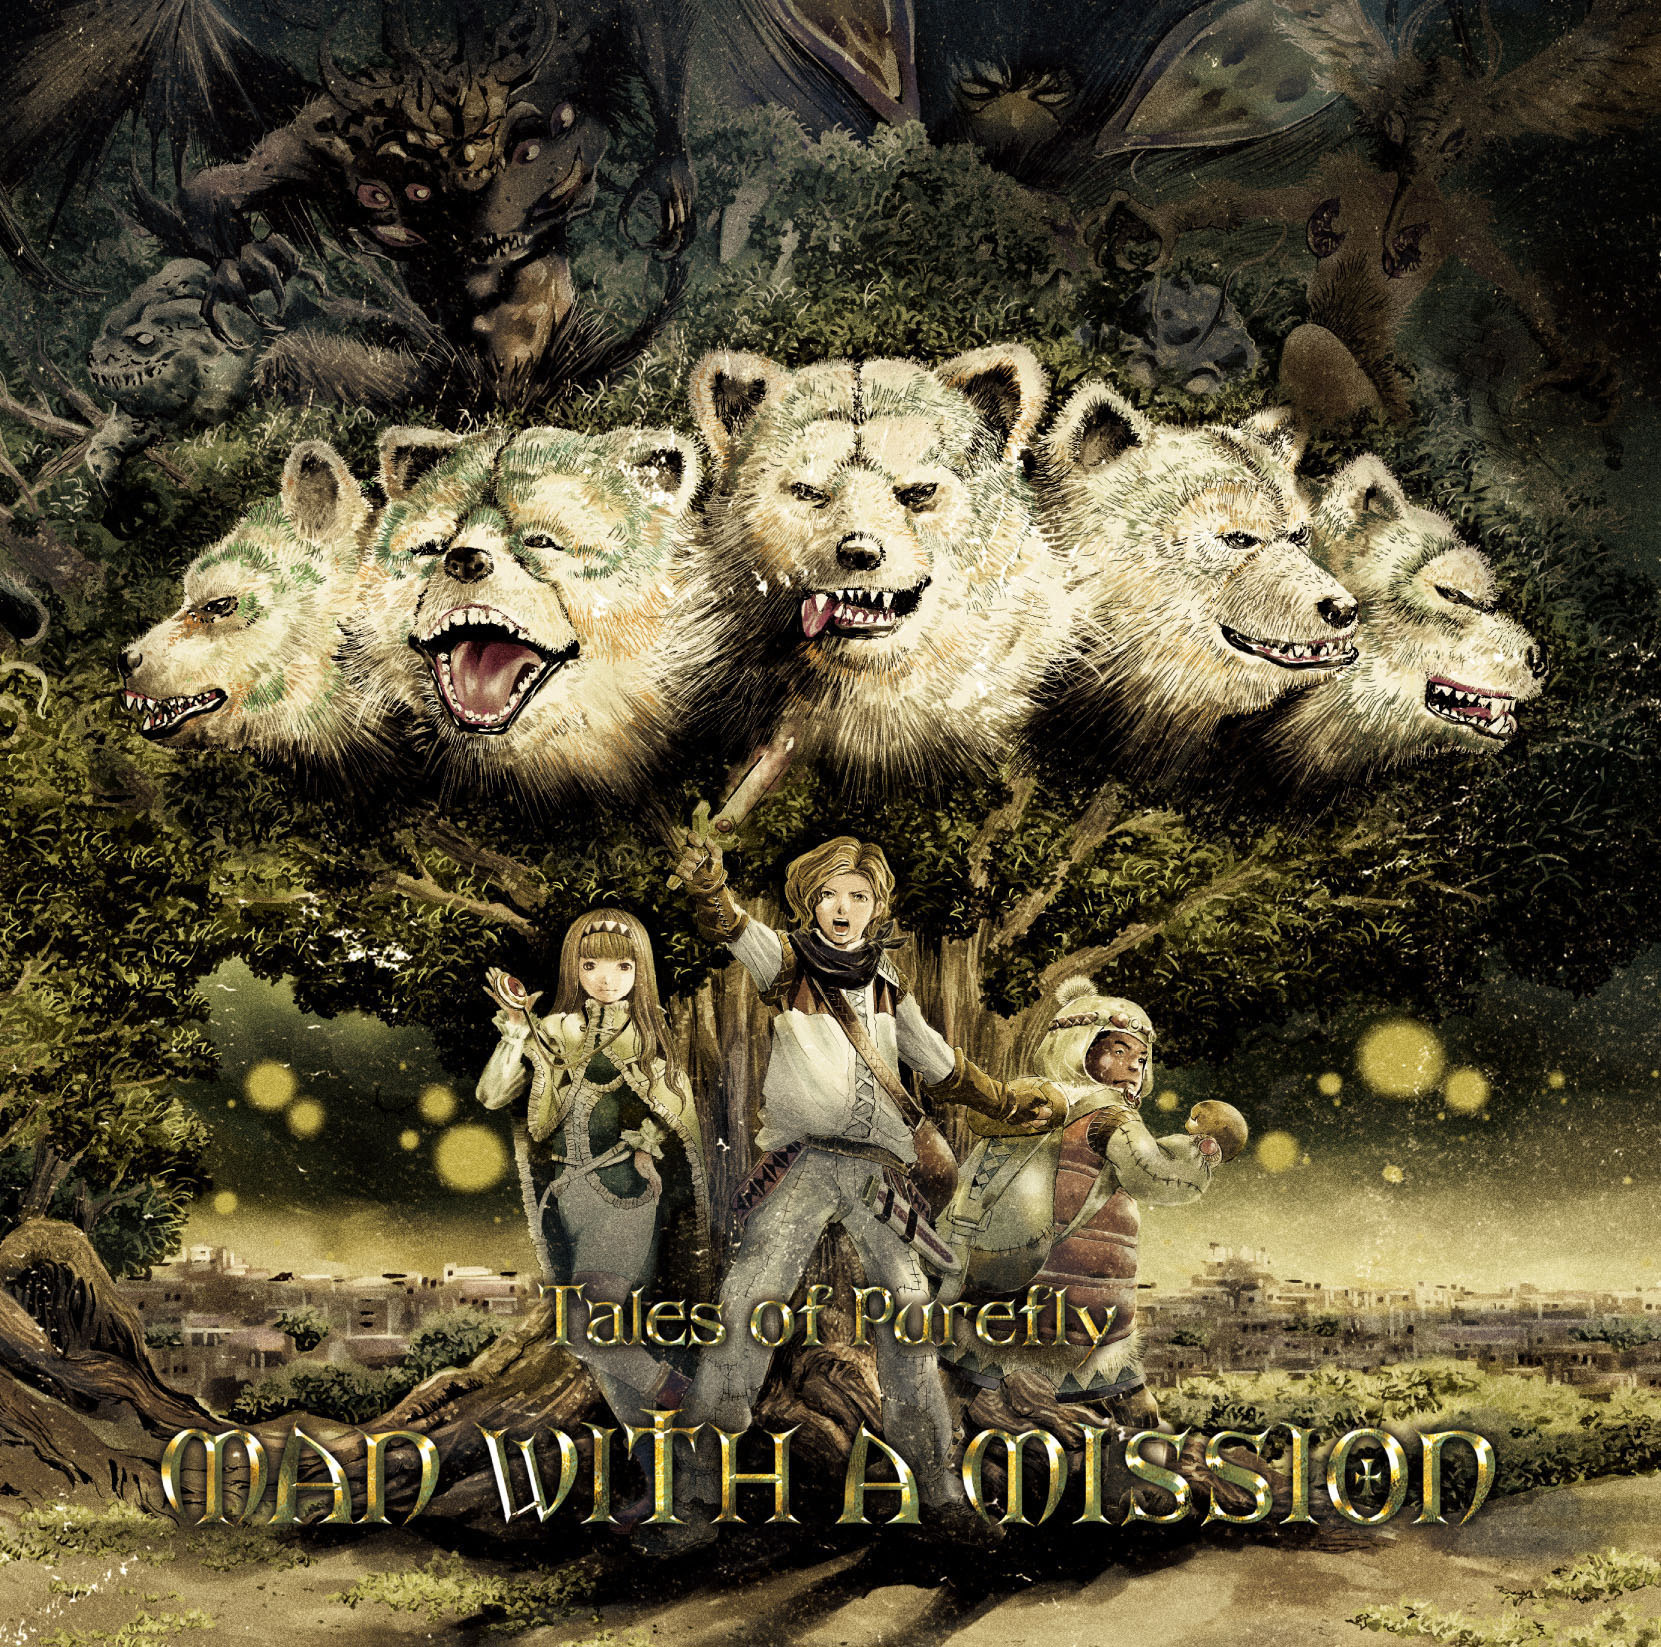 Man With a Mission - Tale of Purefly